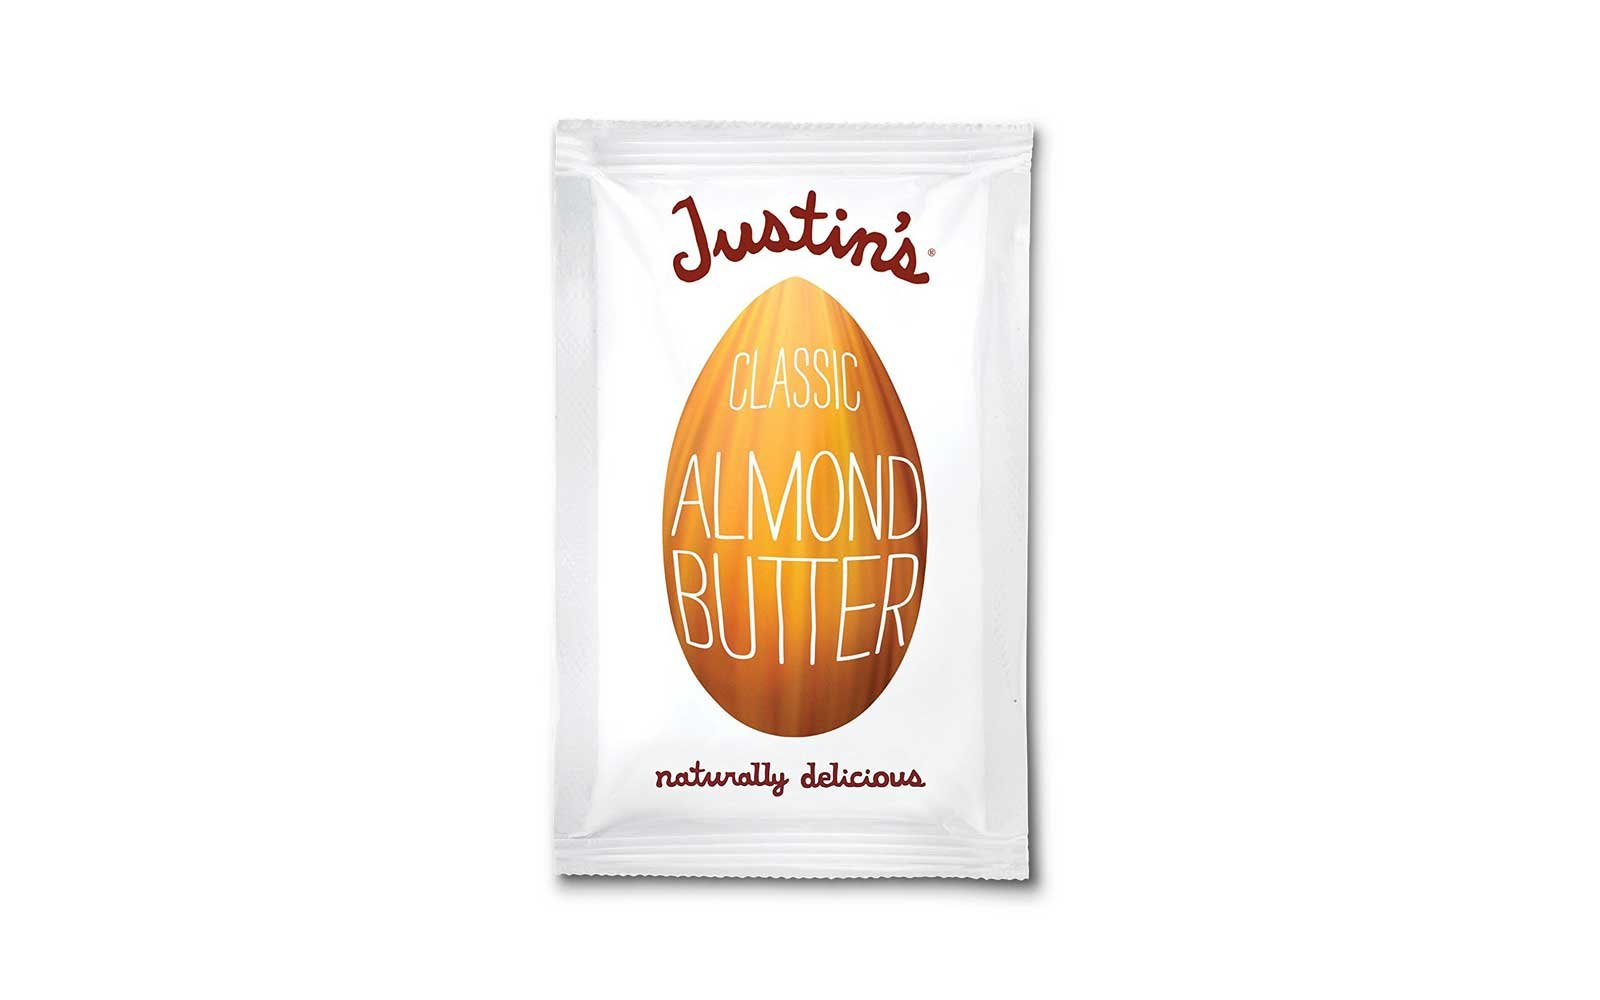 Justins Almond Butter